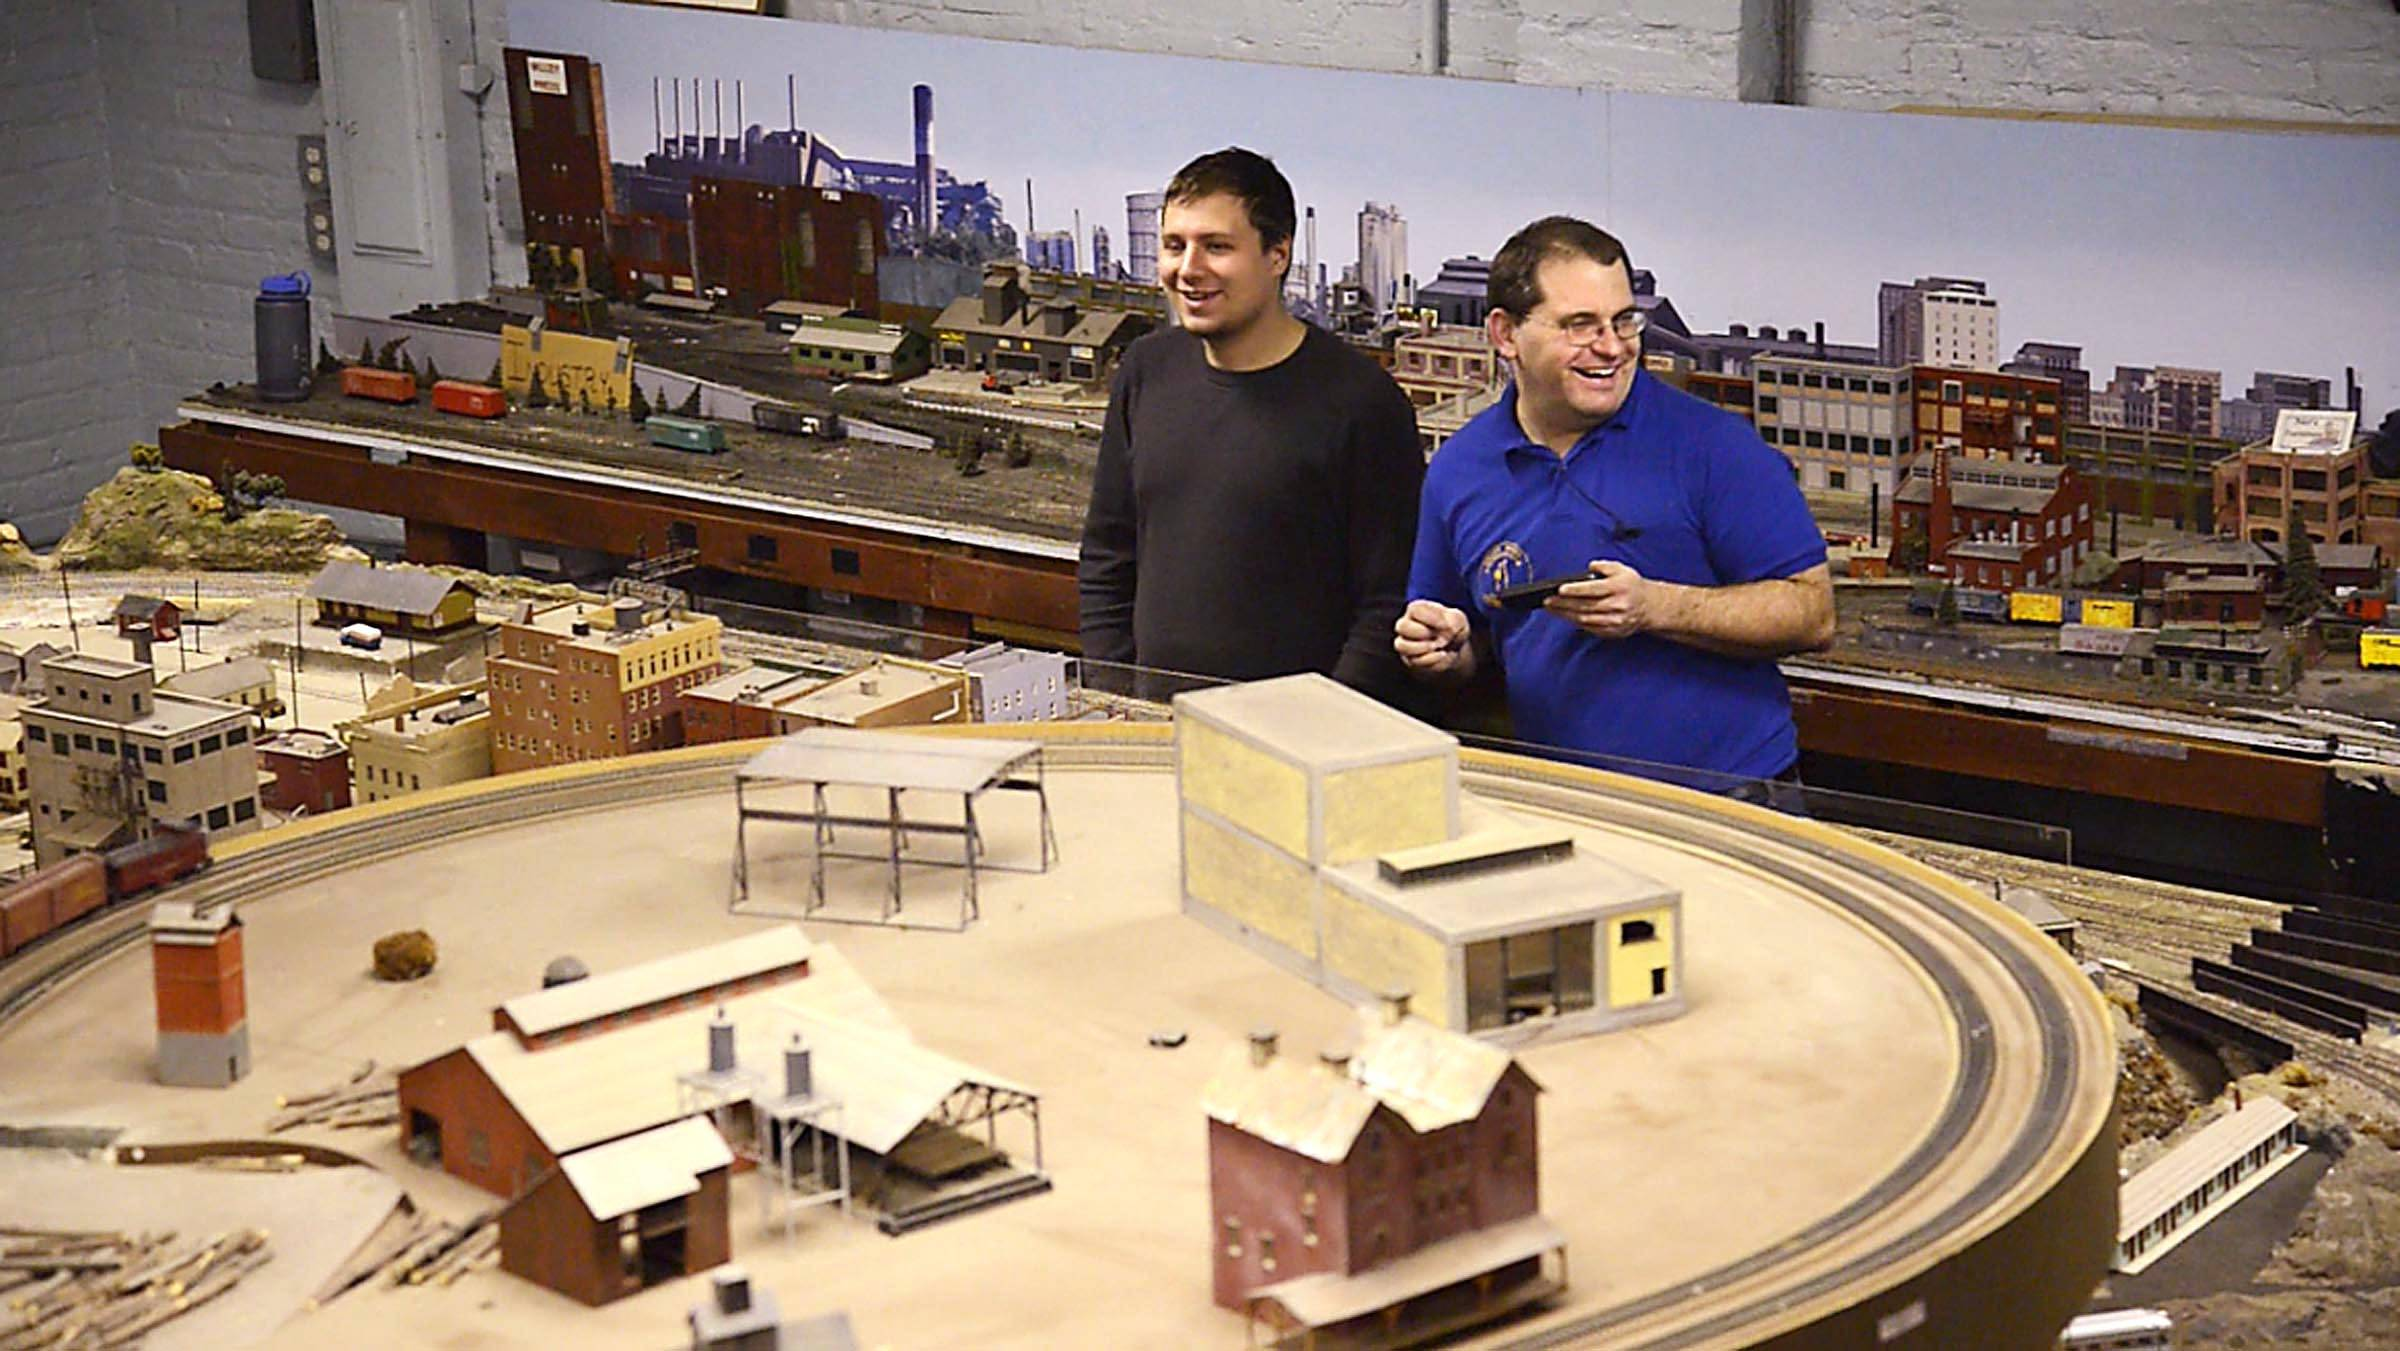 Jim Pechous laughs with club member Trevor Palczynski of Huntley about his ability to wander around the layout and control the track switches with his cellphone.